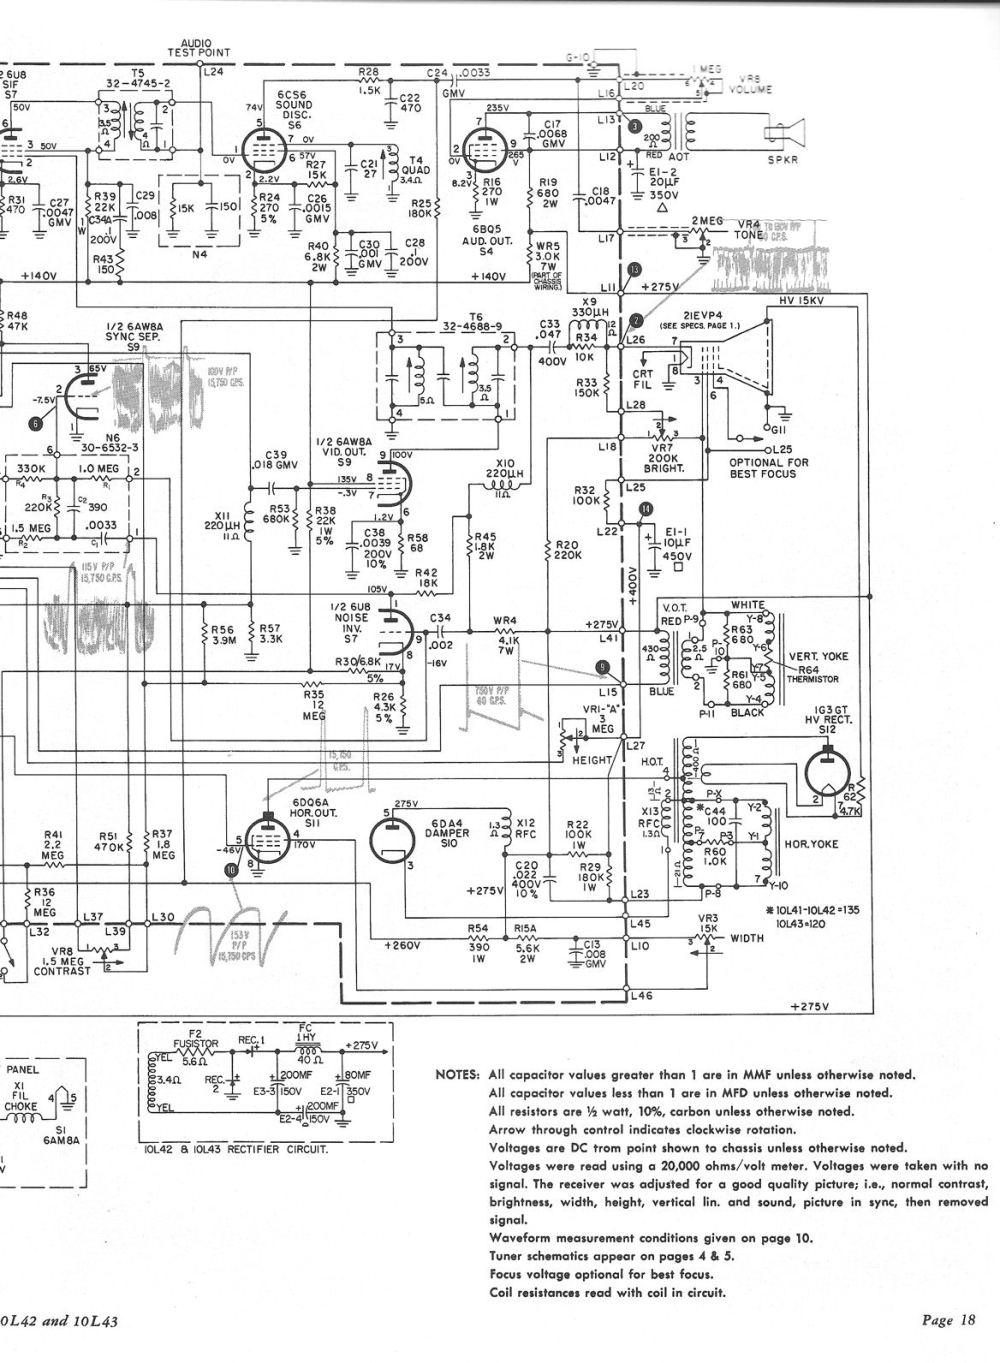 medium resolution of  also got an original philco service manual below are two pages containing the philco schematic to save the files on your computer right click on the